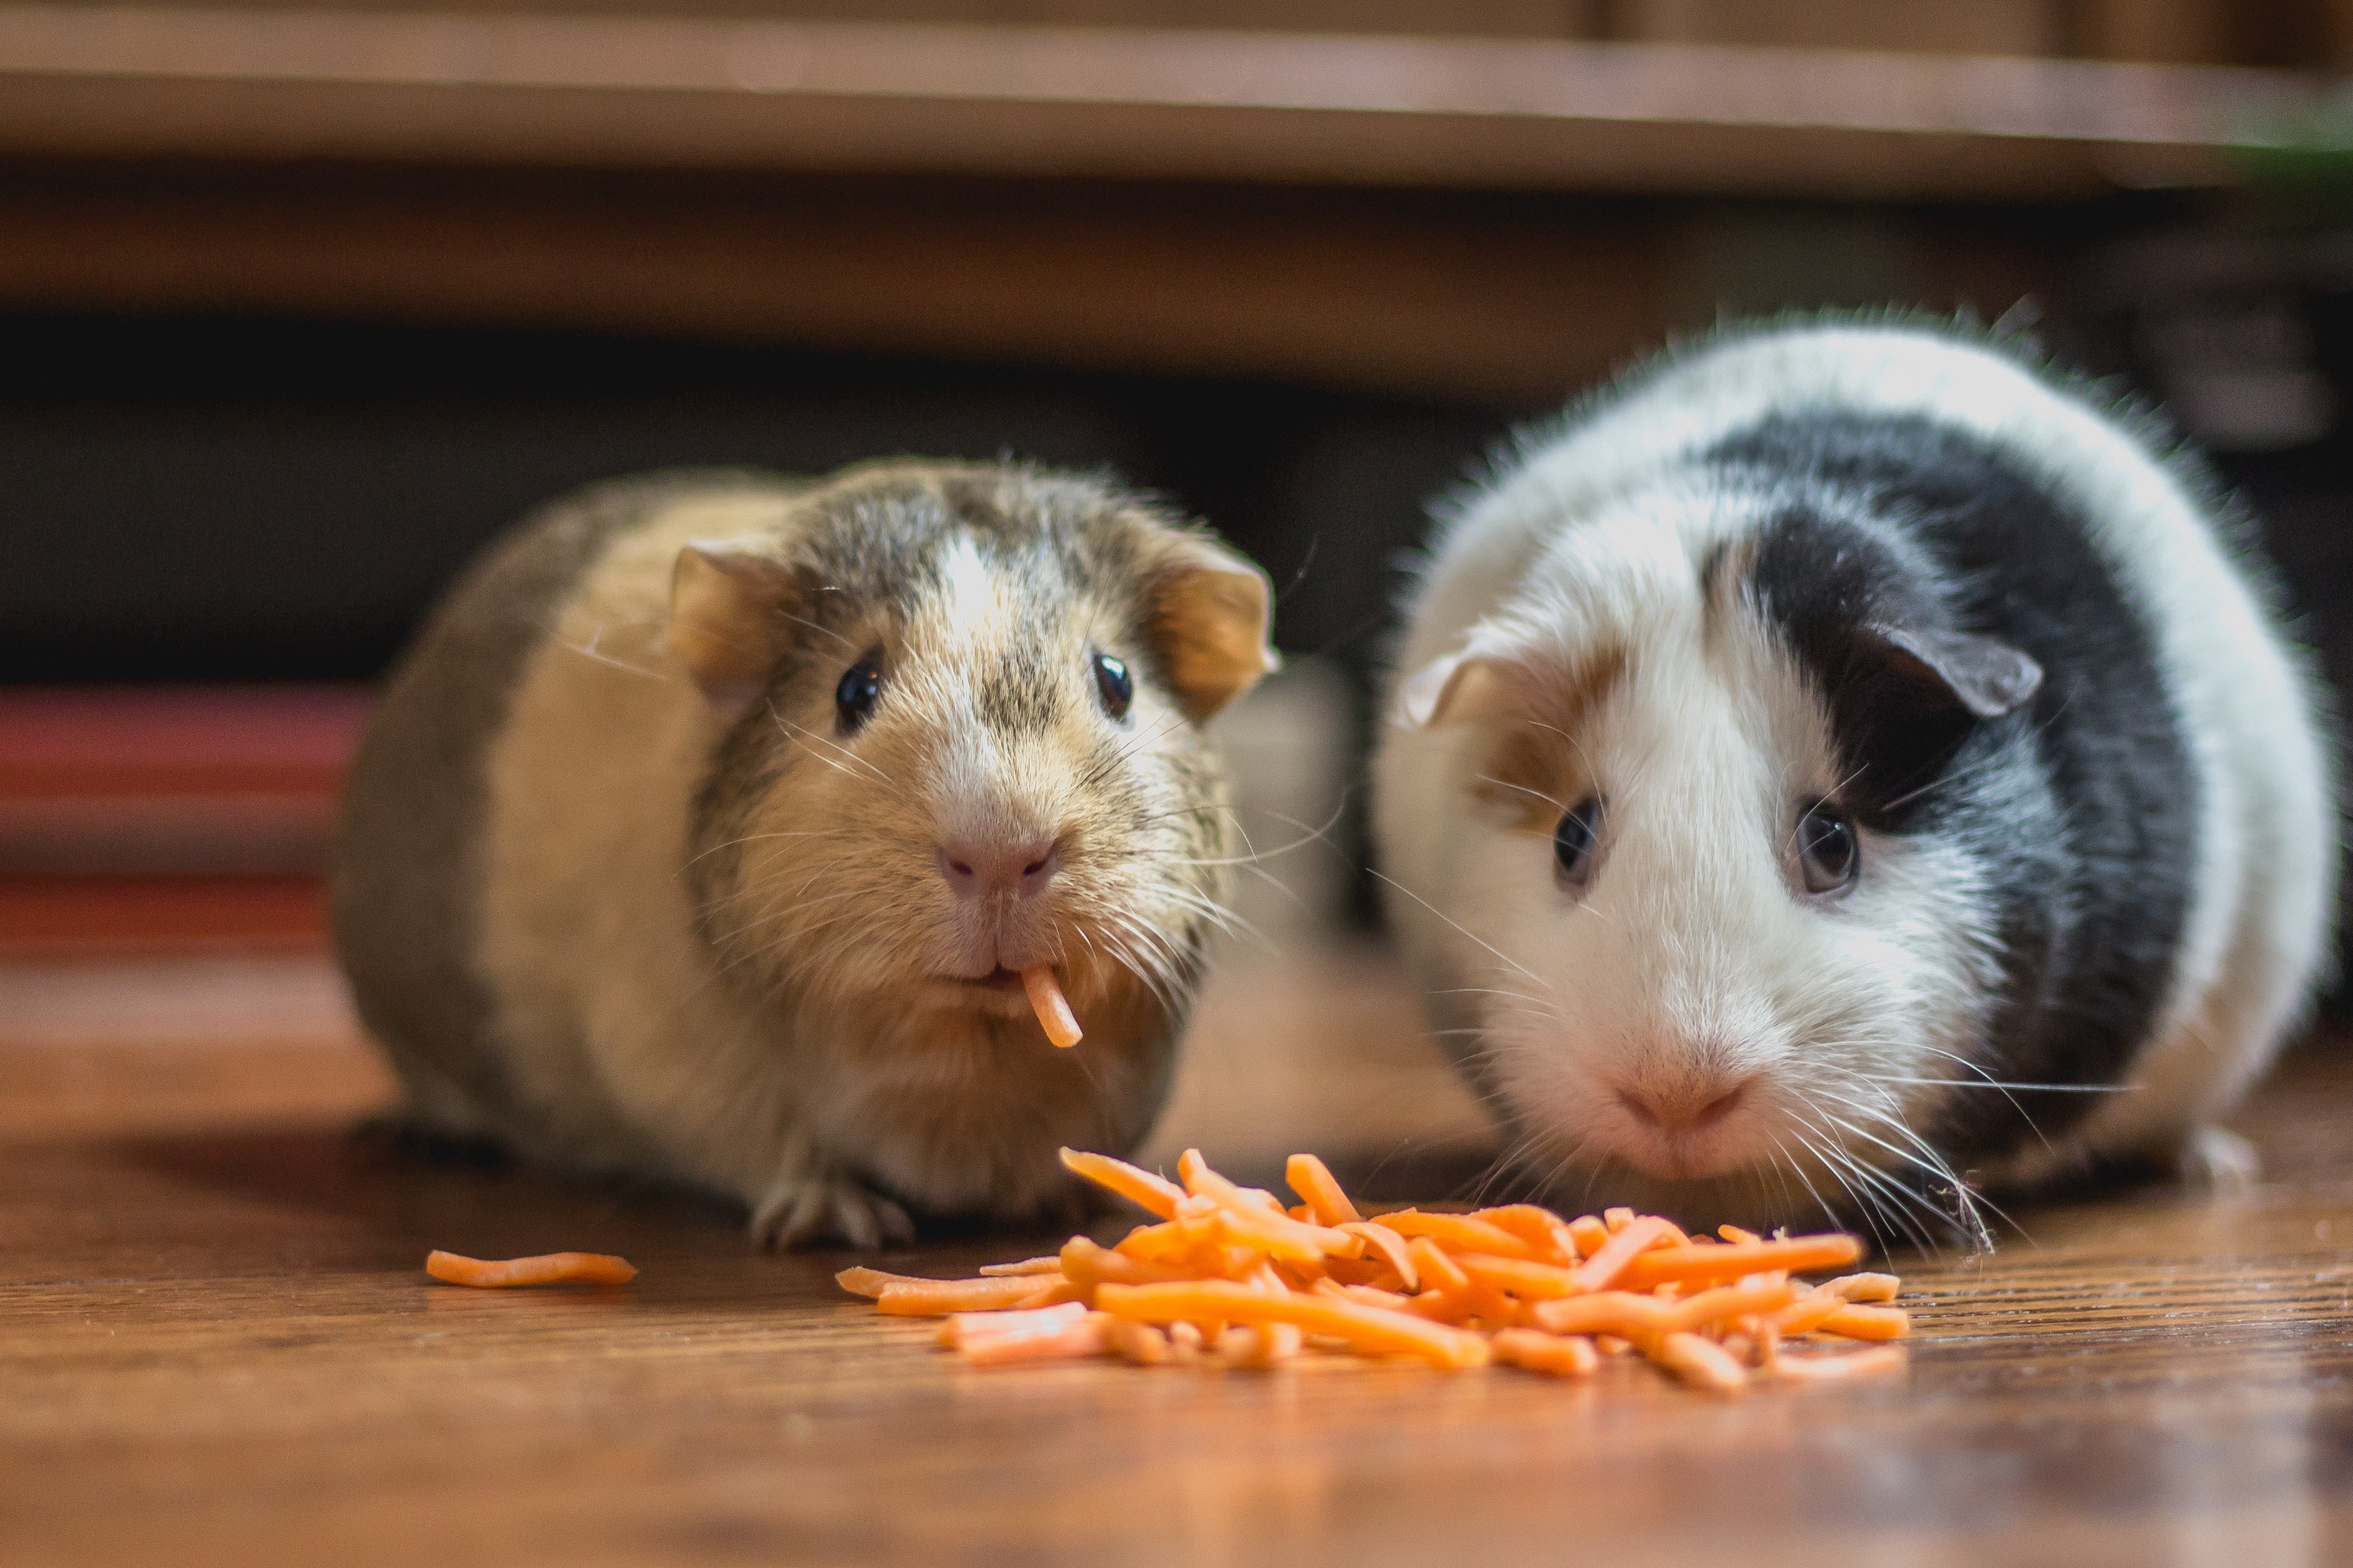 Two guinea pigs looking confused